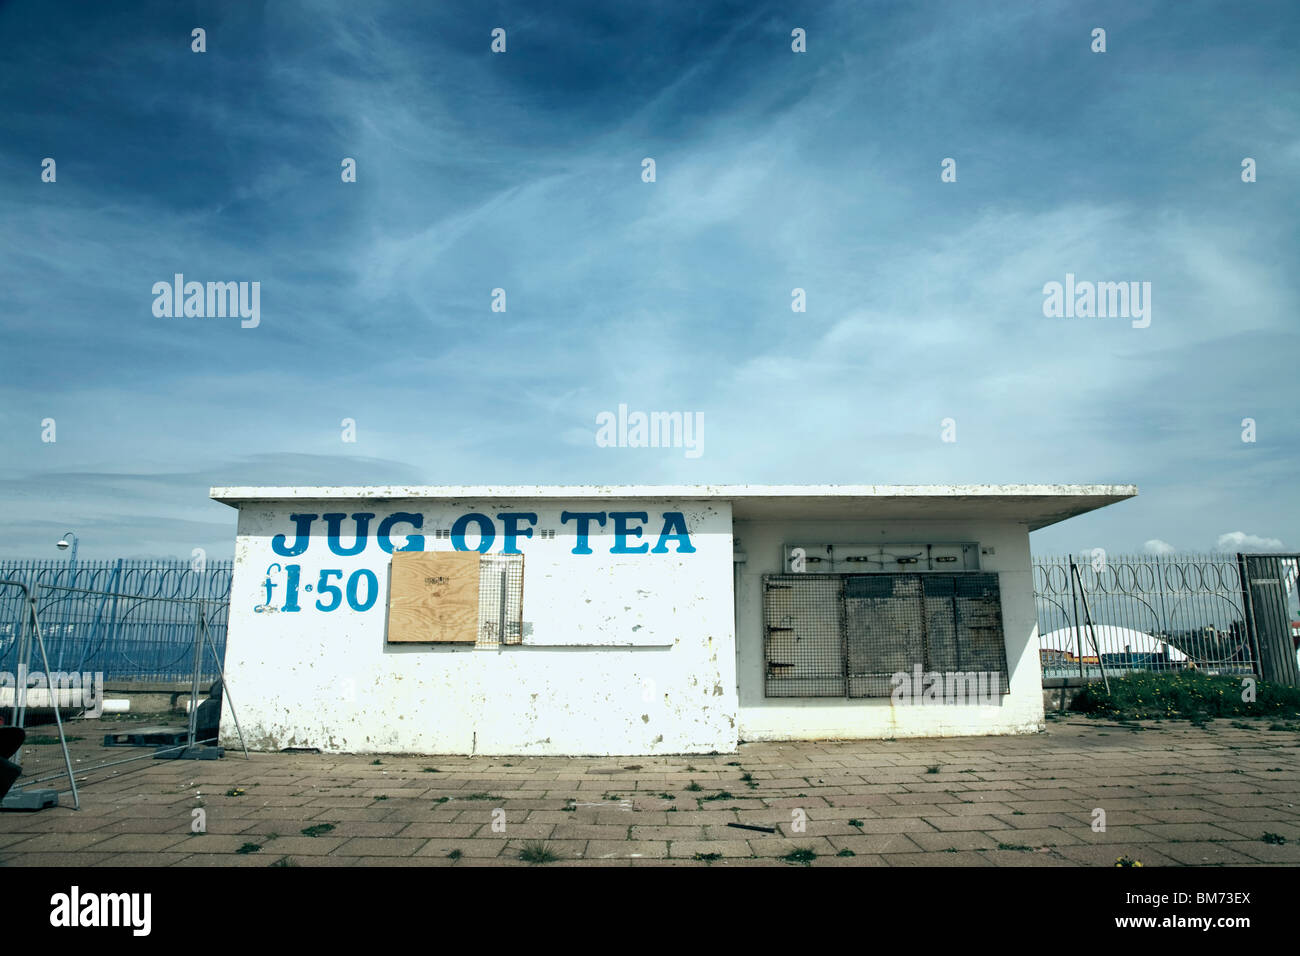 architecture image of a small closed down café building with slogan jug of tea on the front on a sunny day - Stock Image